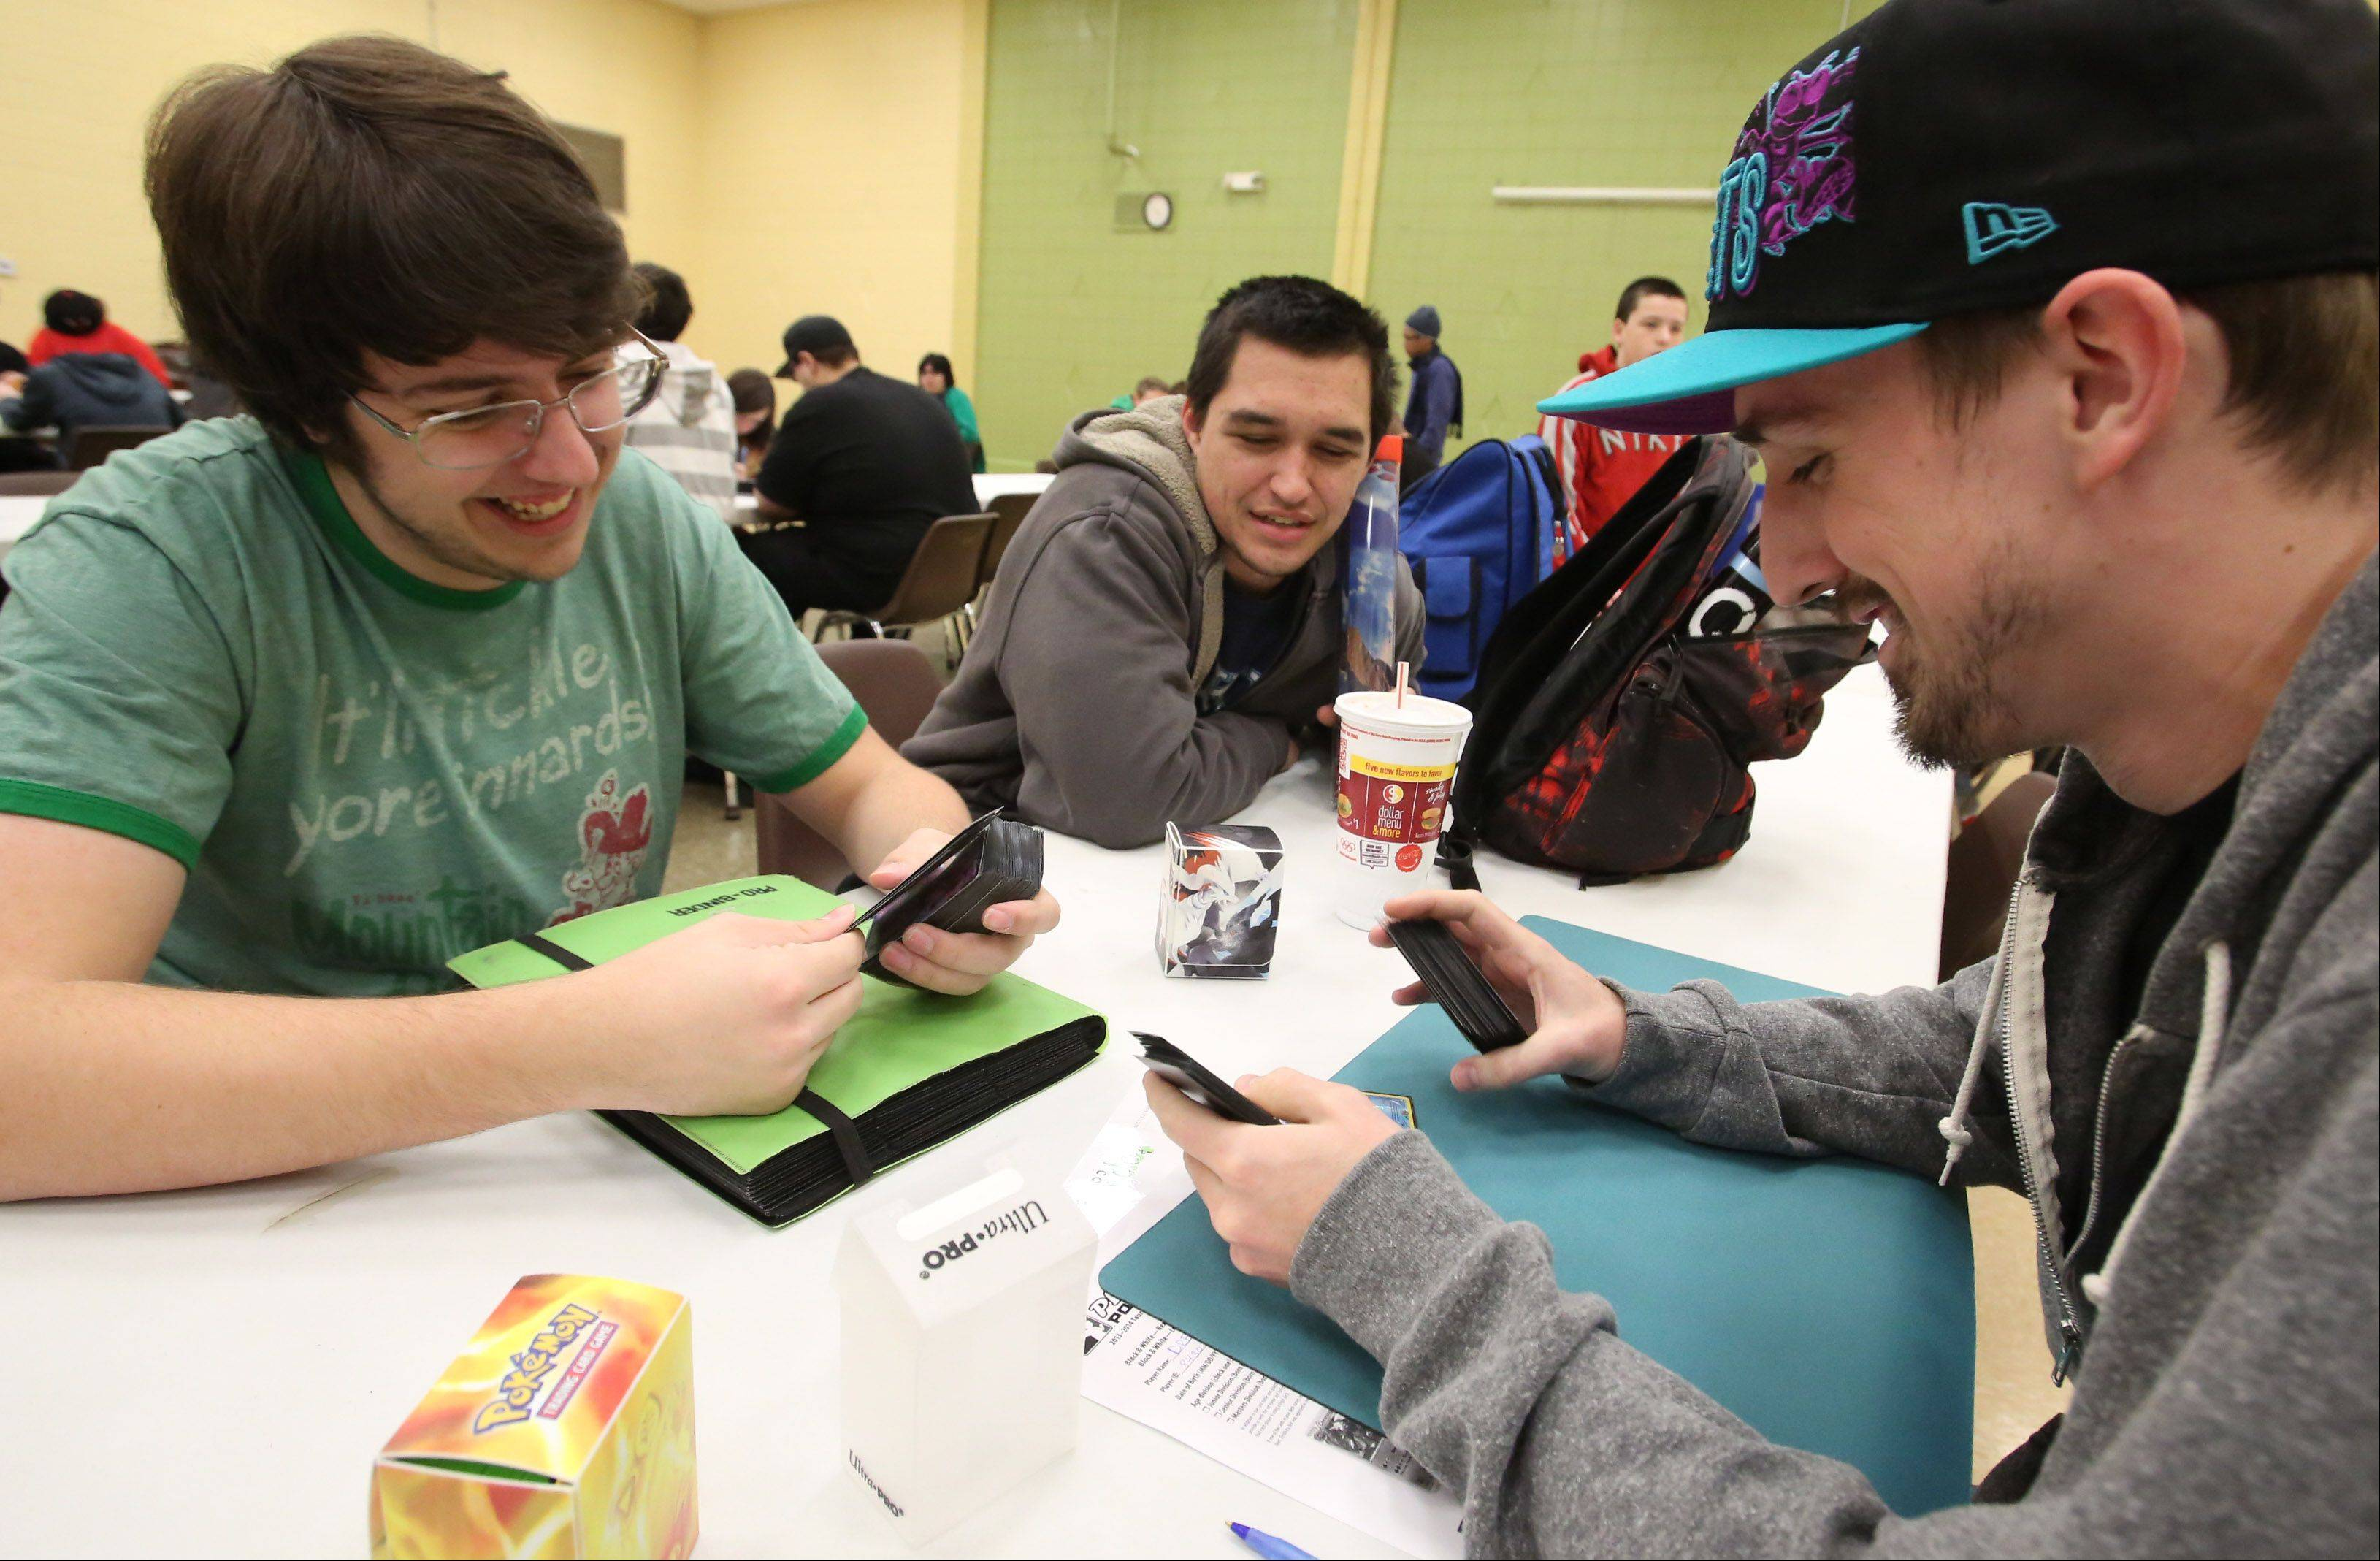 Steven Vlosak, of Downers Grove, left, prepares to play Drew Stasica of Oswego, as Cody Kiessmann of Westmont looks on during the Pokémon City Championships at the Huntley Park District on Saturday.